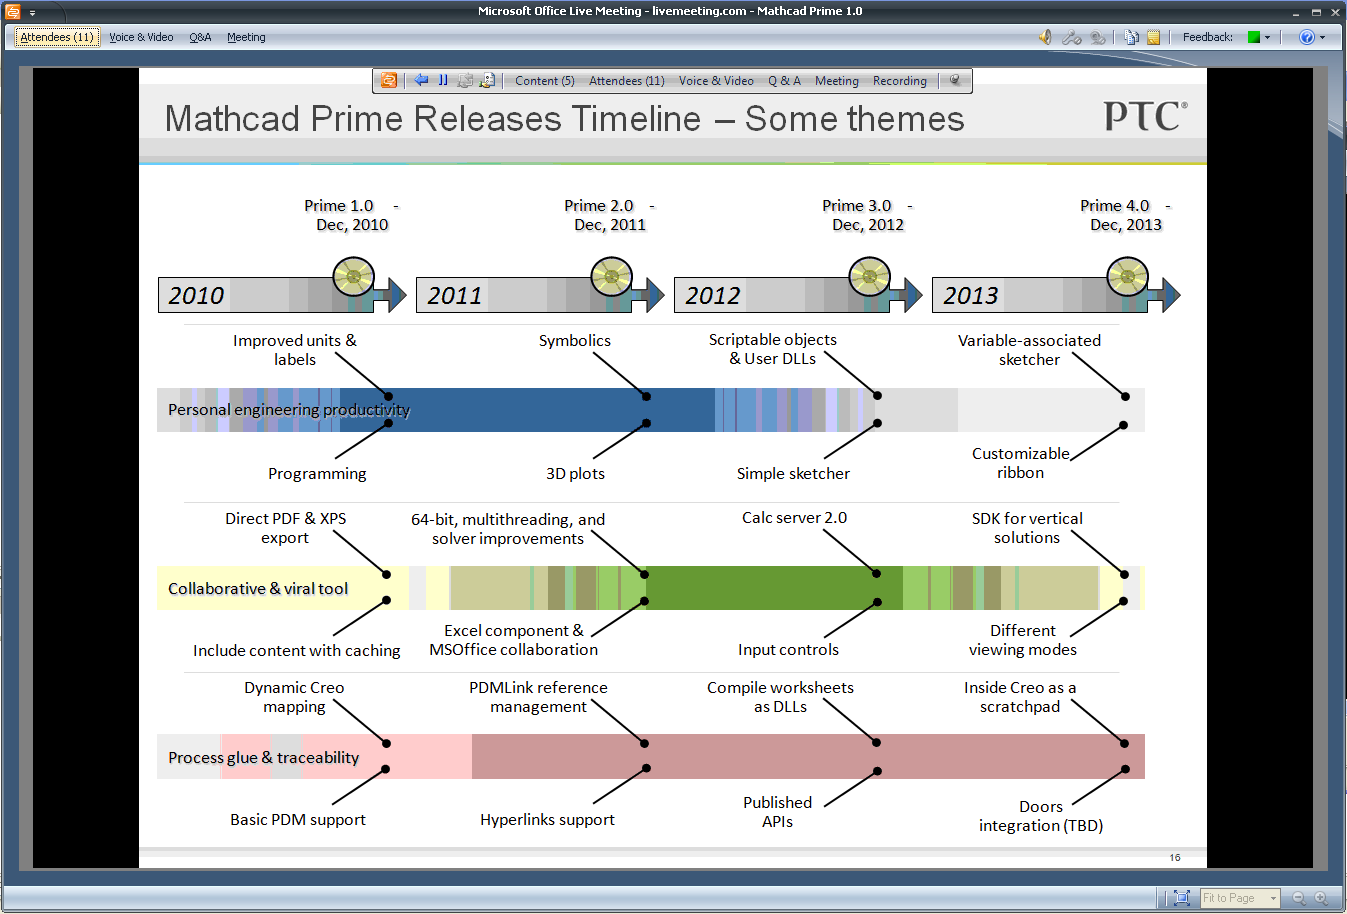 Mathcad Prime Roadmap.PNG